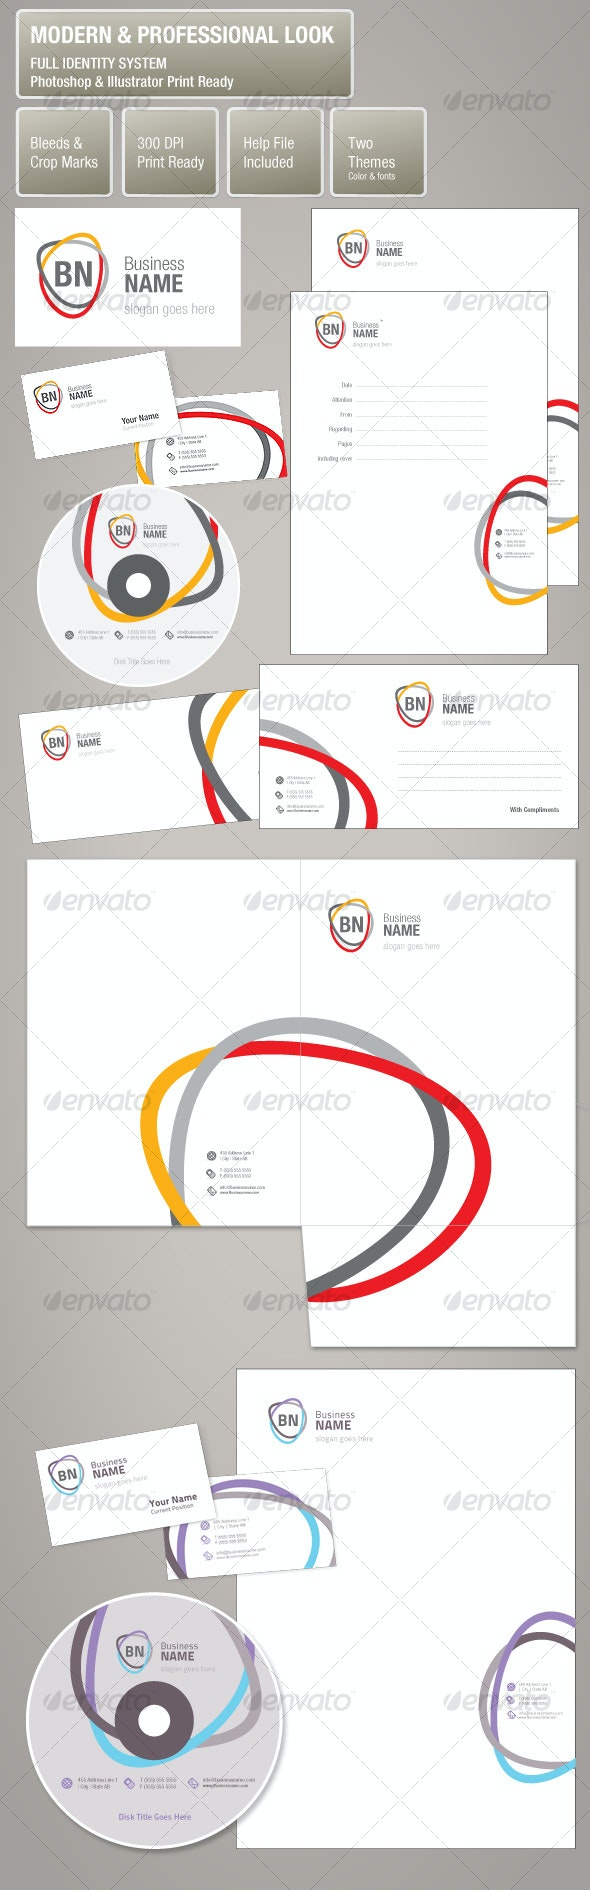 Modern Professional Look Corporate Identity System - Stationery Print Templates